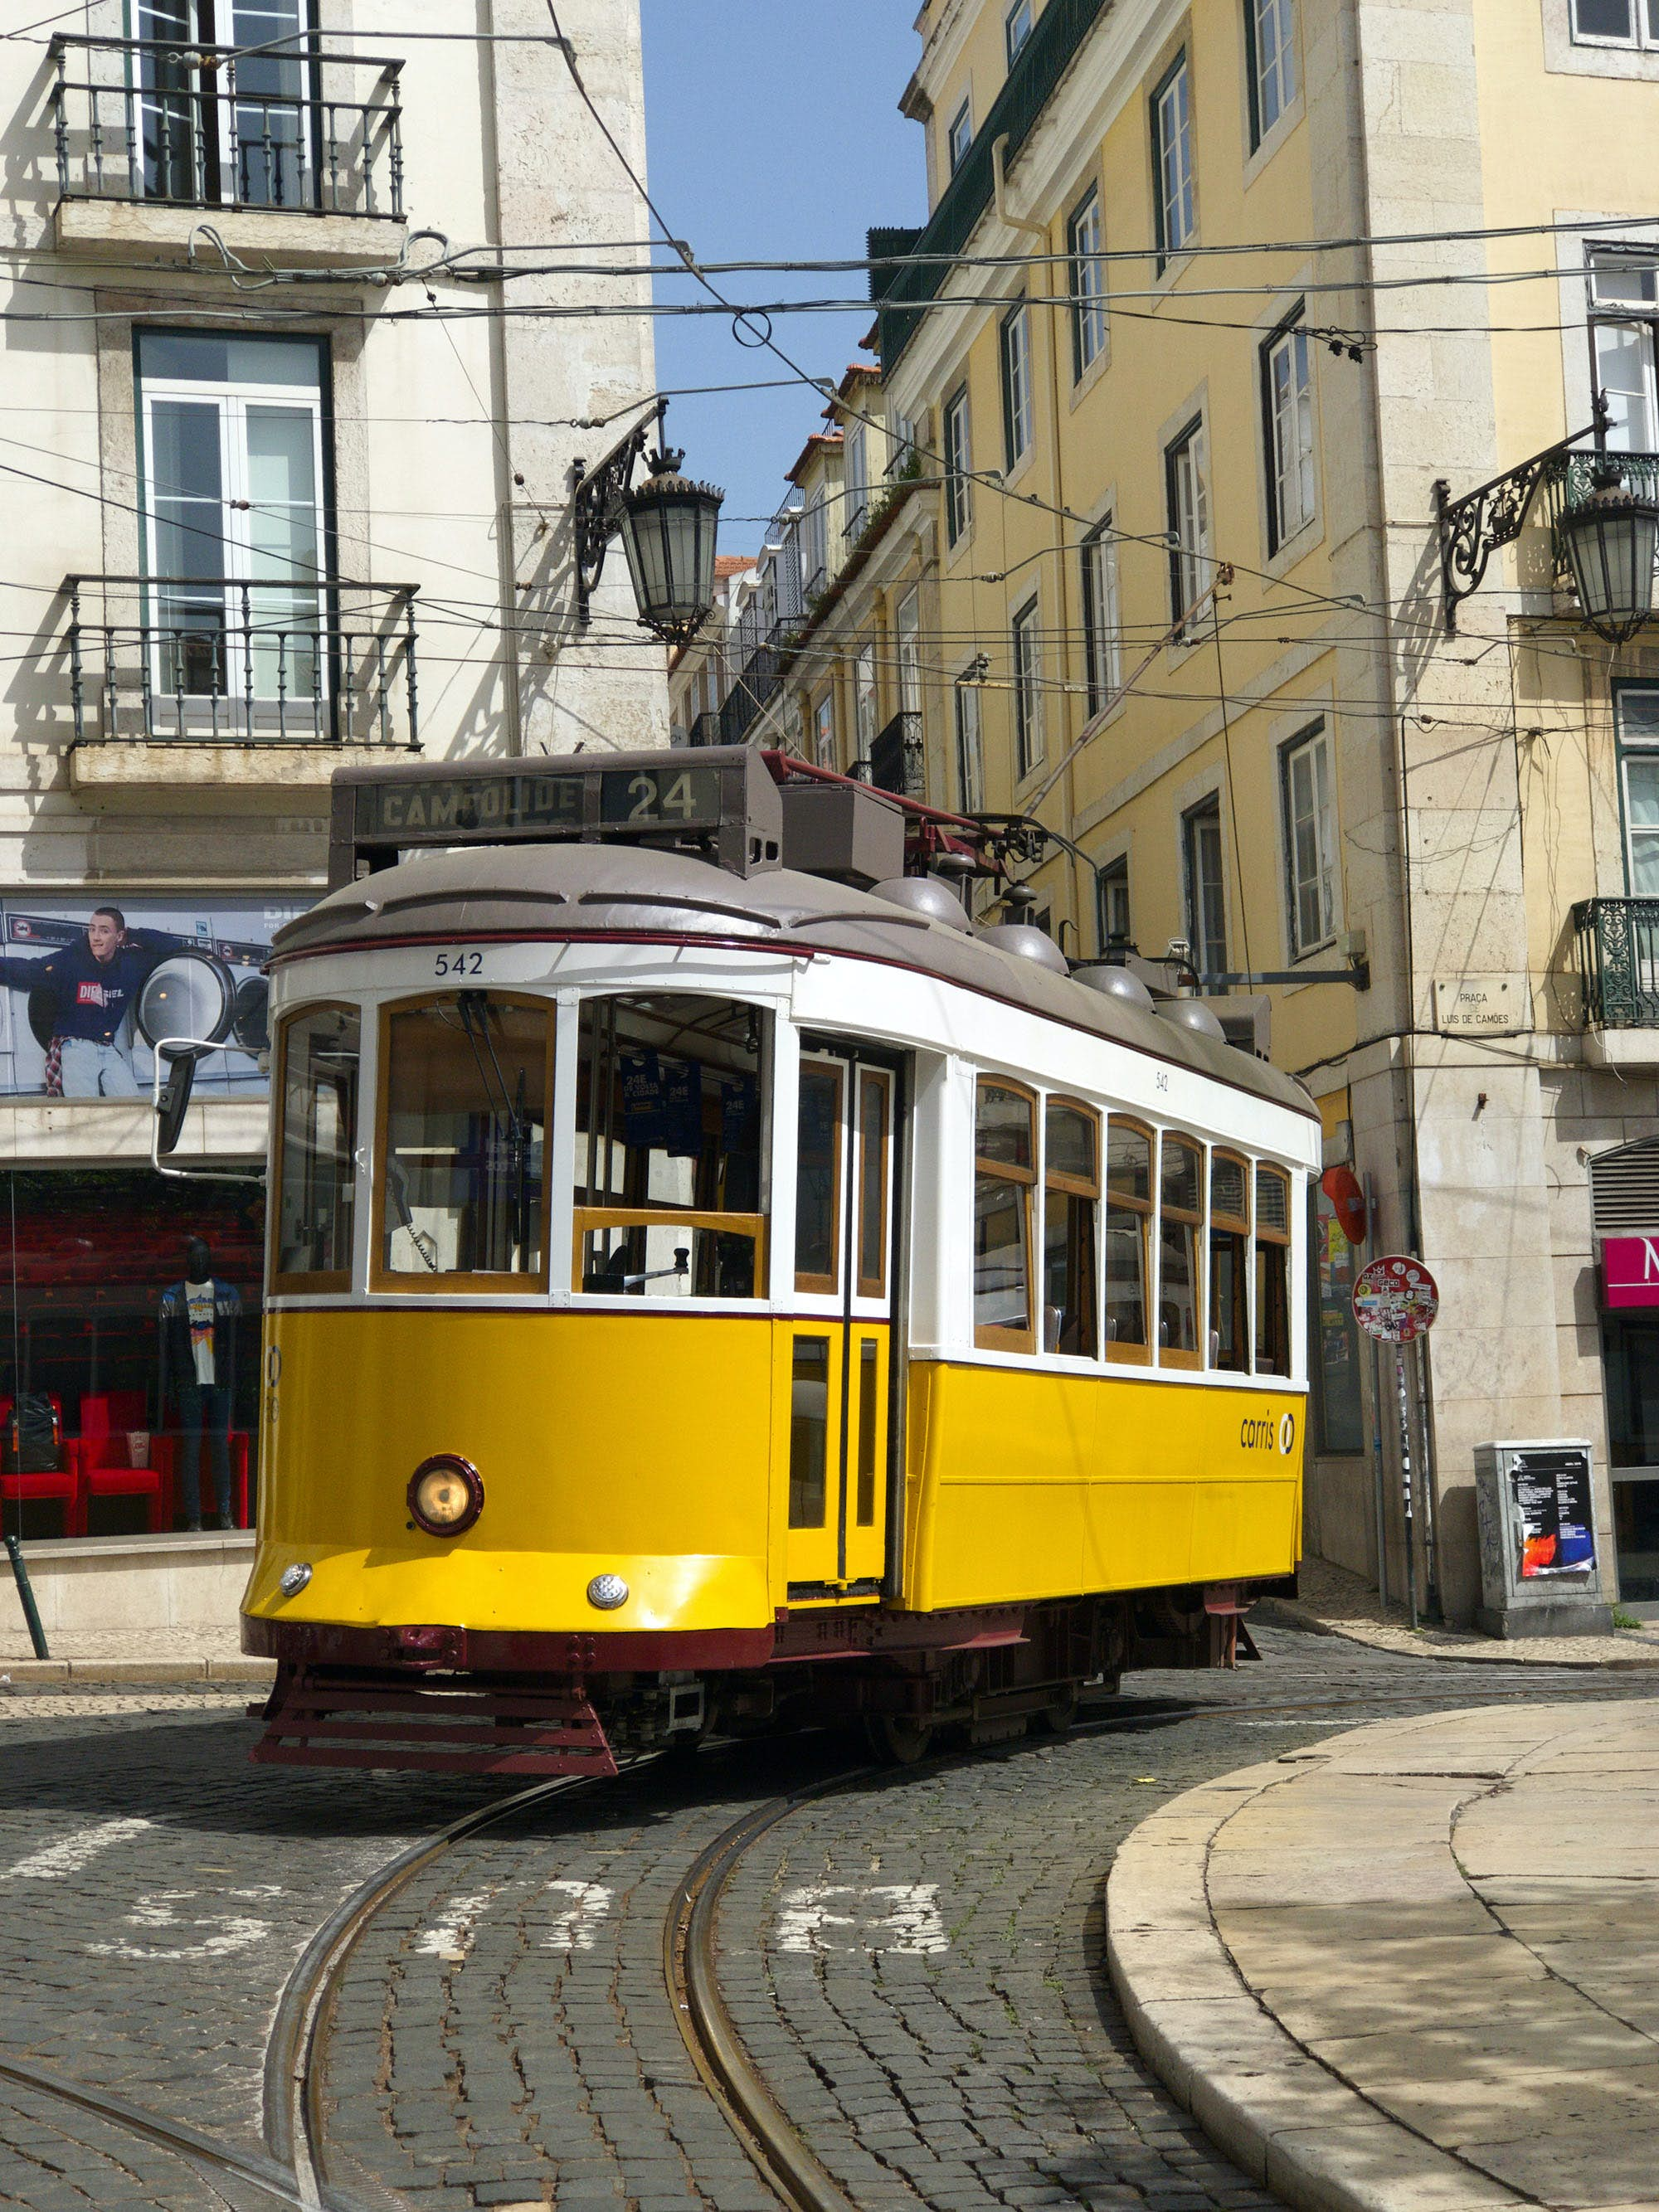 New areas of Lisbon open up to travellers and locals as tram line resumes after 23 years - Lonely Planet